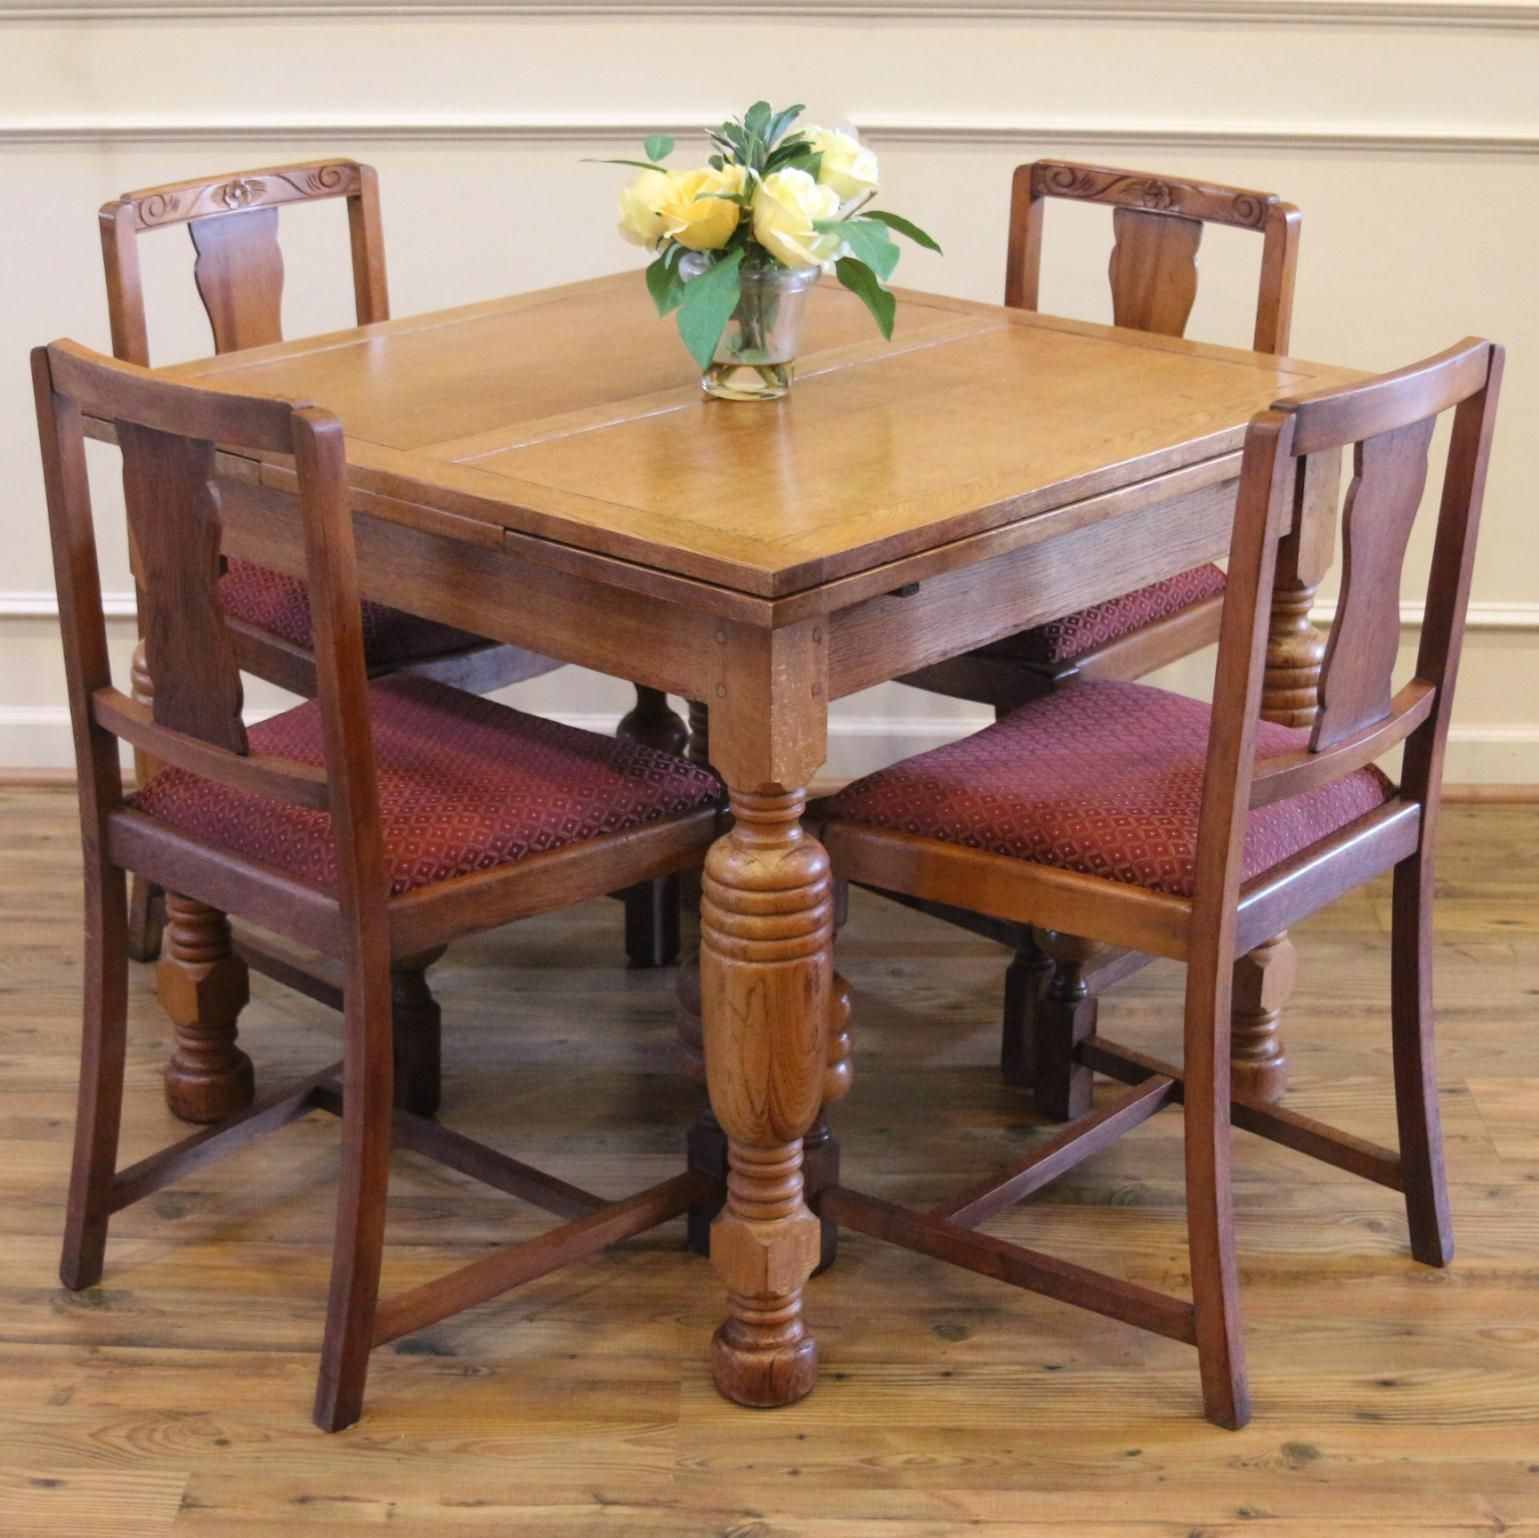 Antique English Oak Pub Table And 4 Chairs Dining Set (View 5 of 20)